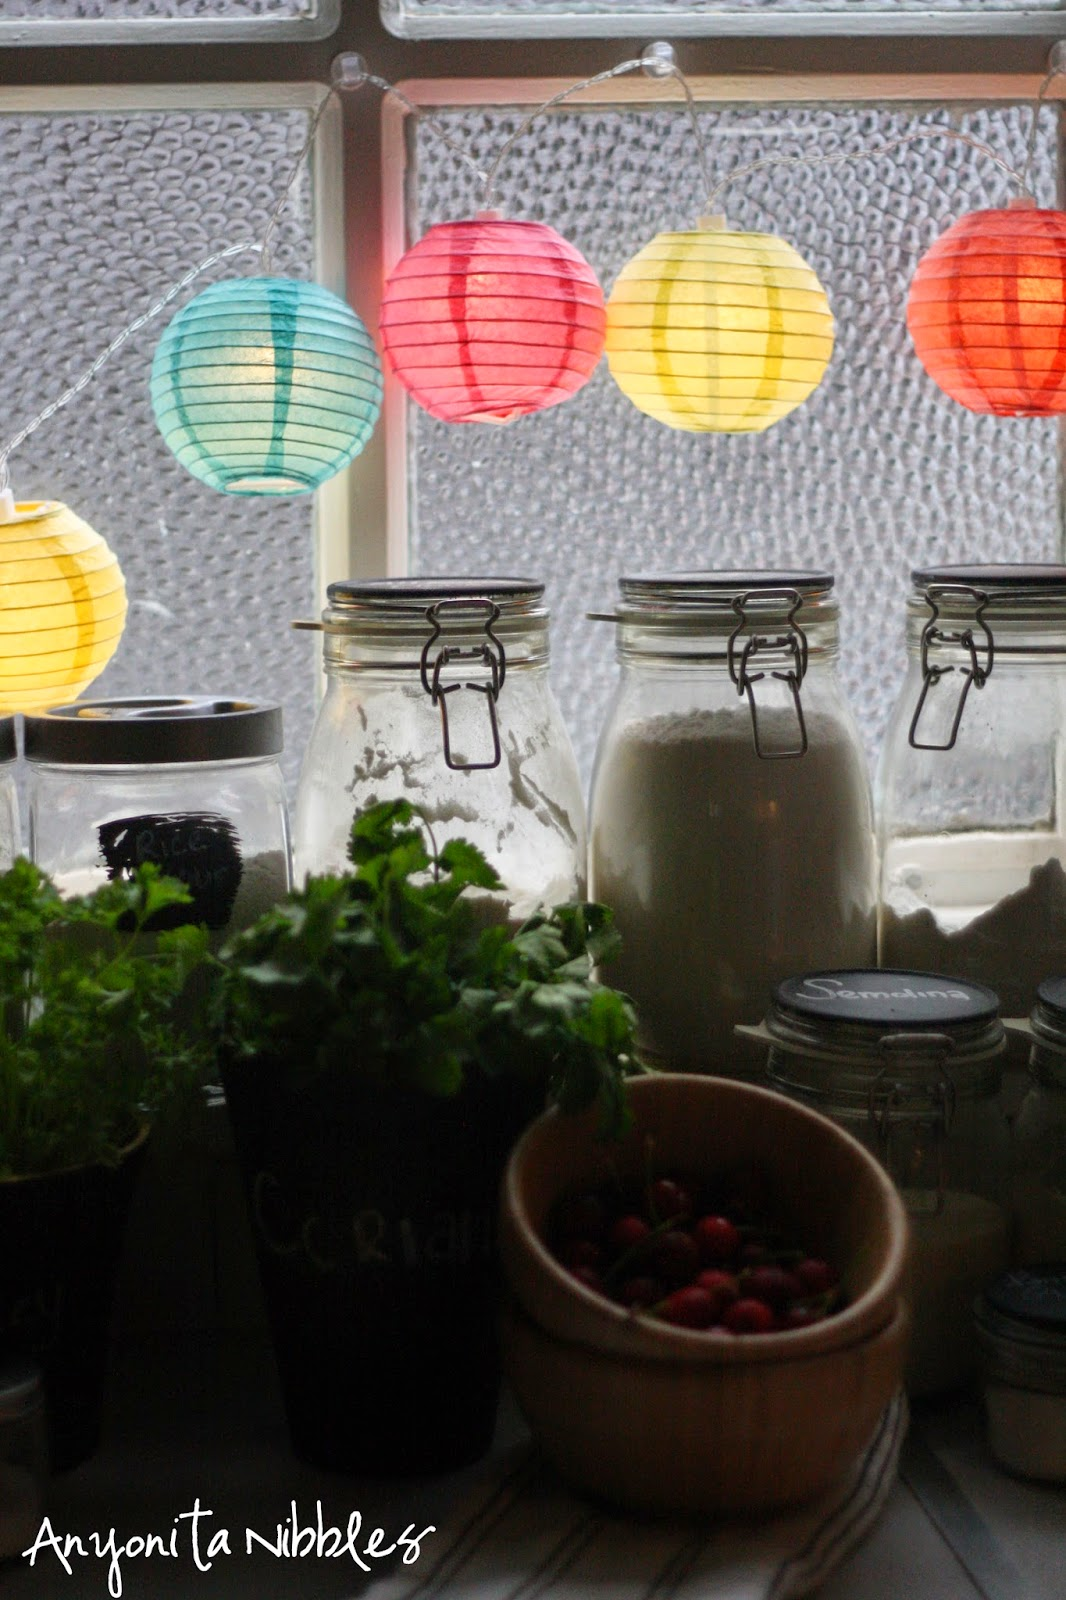 Paper lanterns add pop of color to a basic kitchen from Anyonita Nibbles